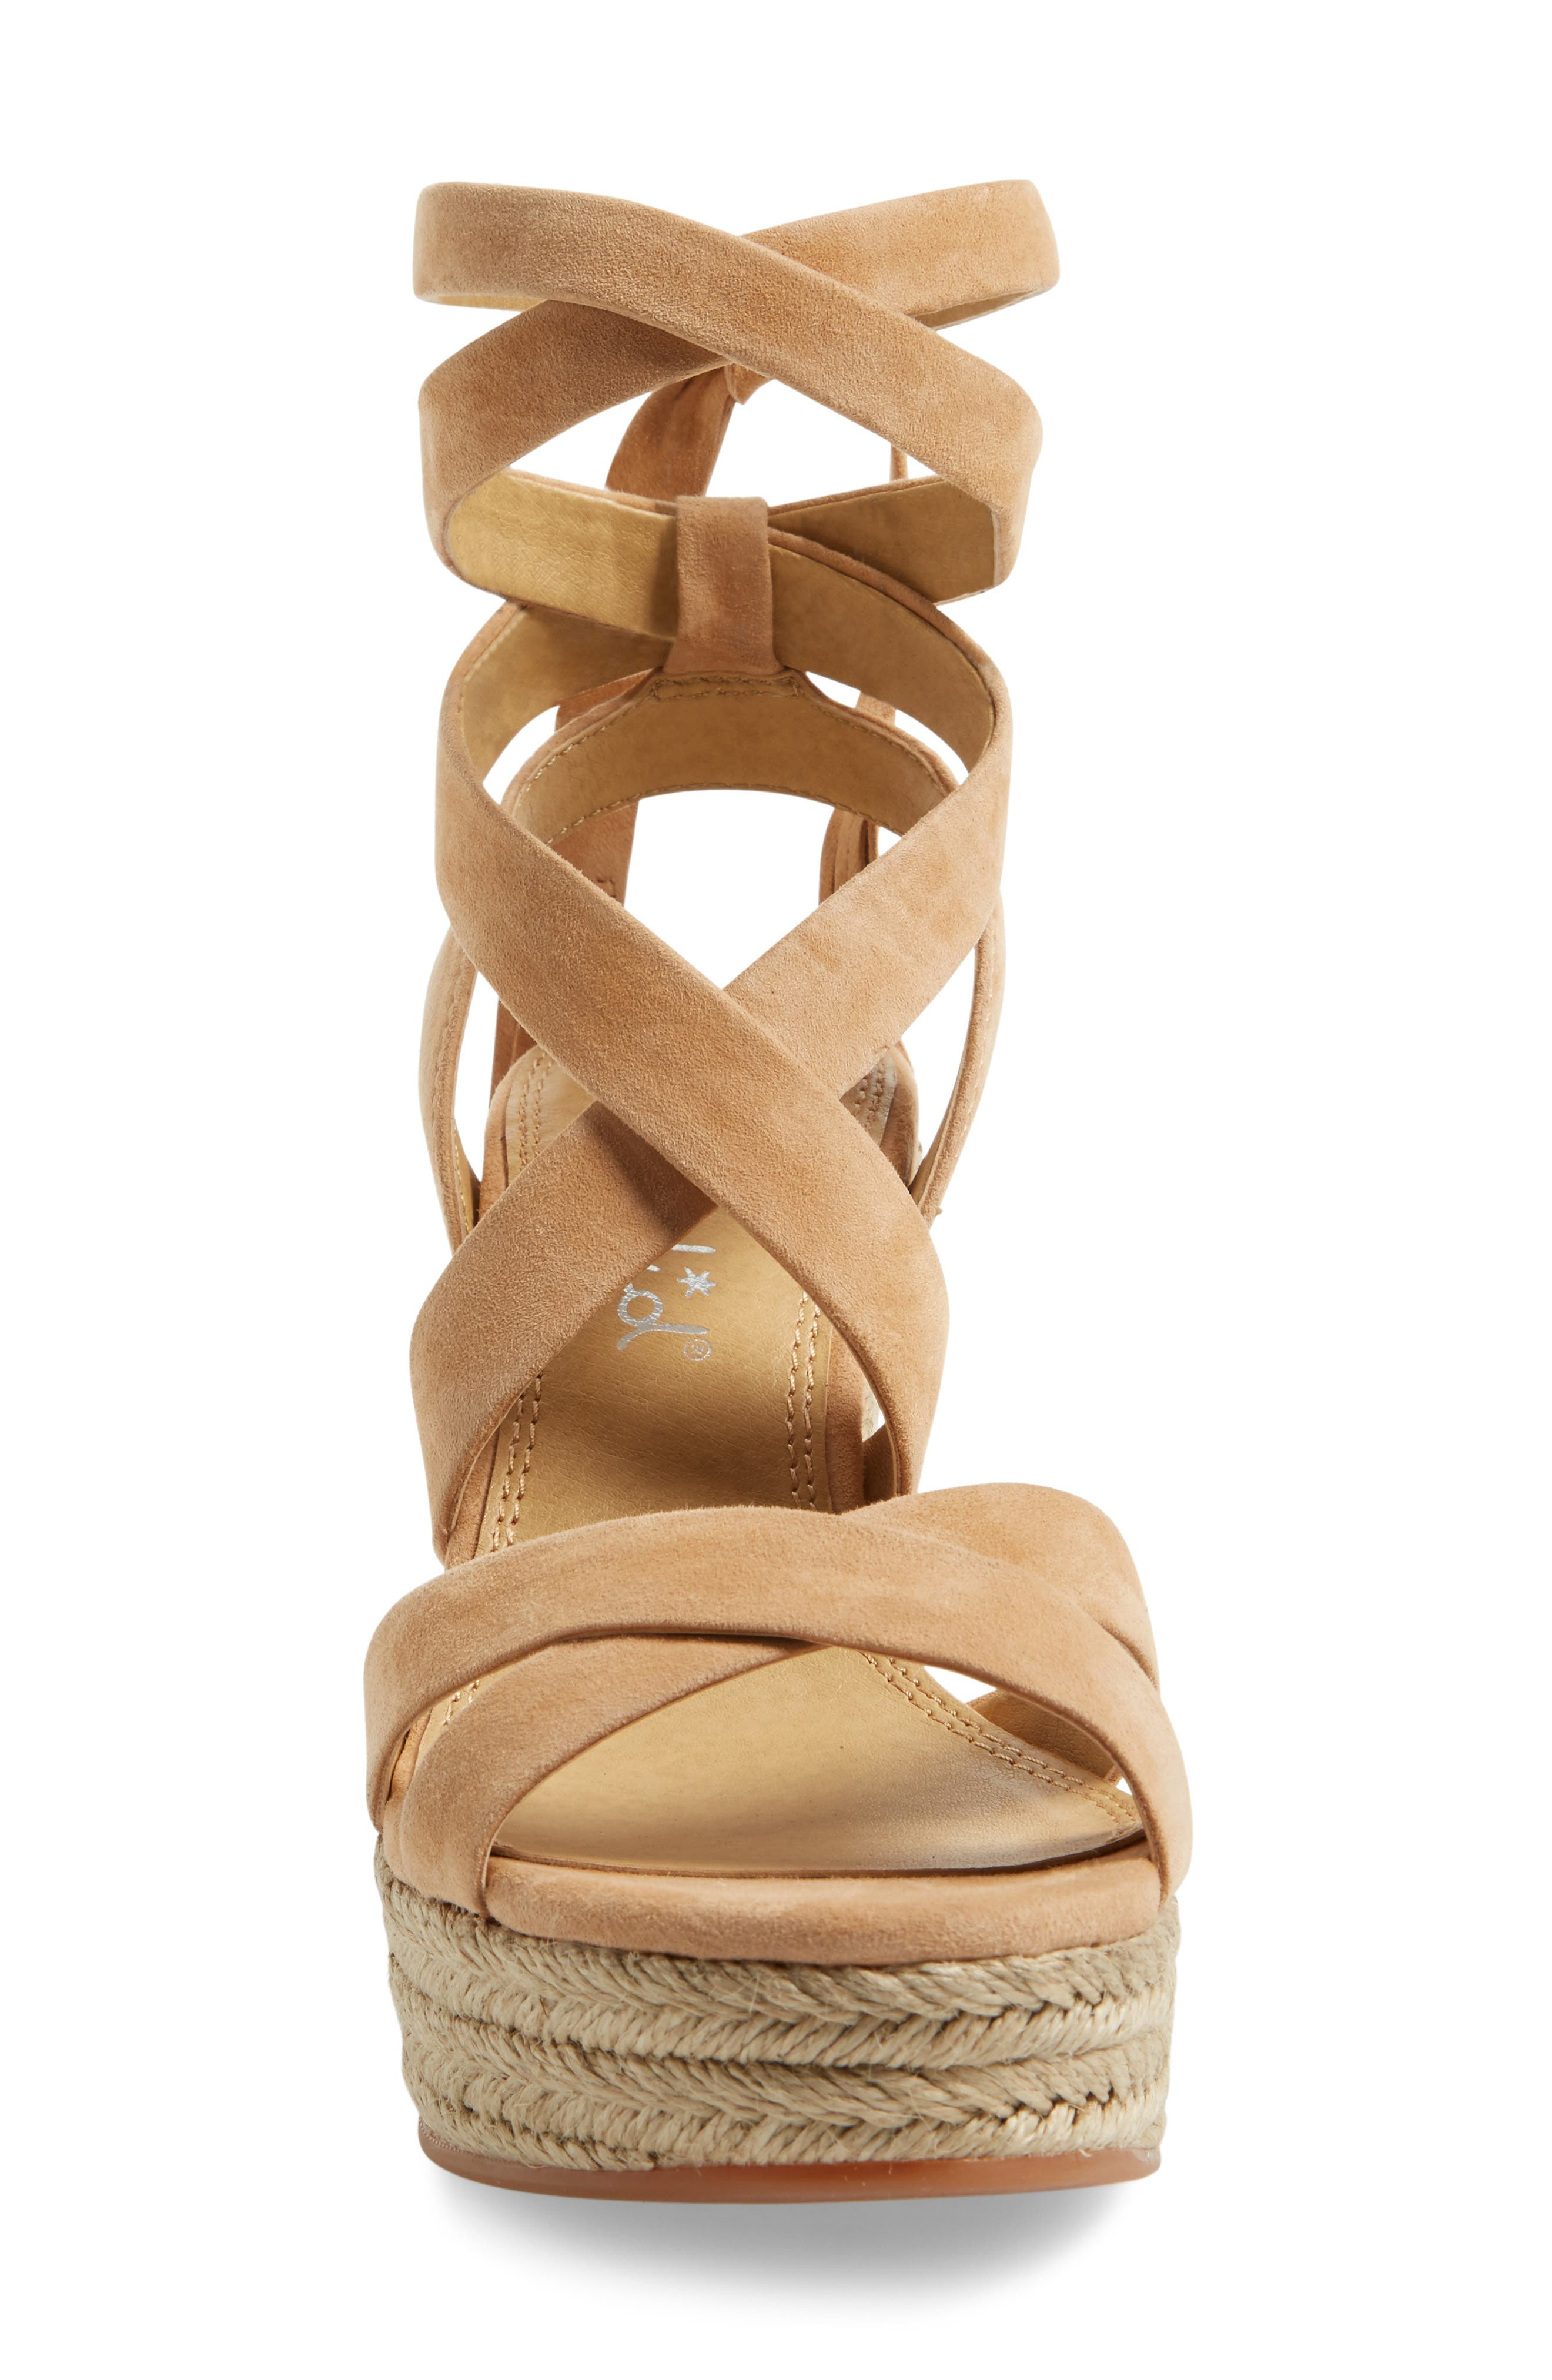 Janice Espadrille Wedge Sandal,                             Alternate thumbnail 3, color,                             Nude Suede